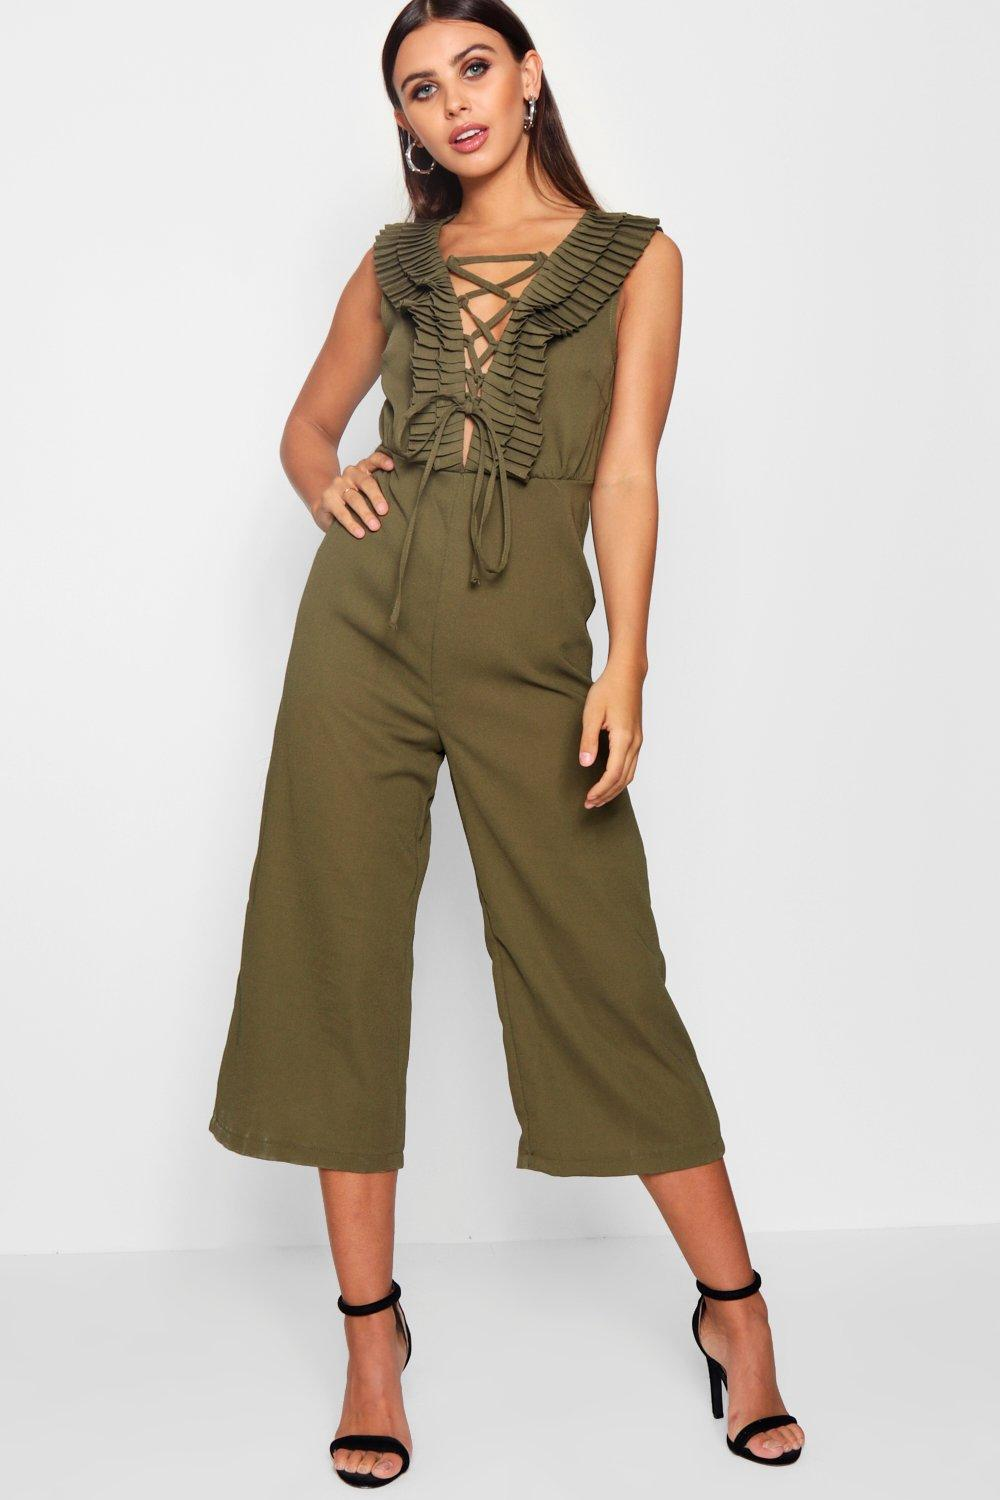 NEW-Boohoo-Womens-Petite-Megan-Ruffle-Lace-Up-Culotte-Jumpsuit-in-Polyester